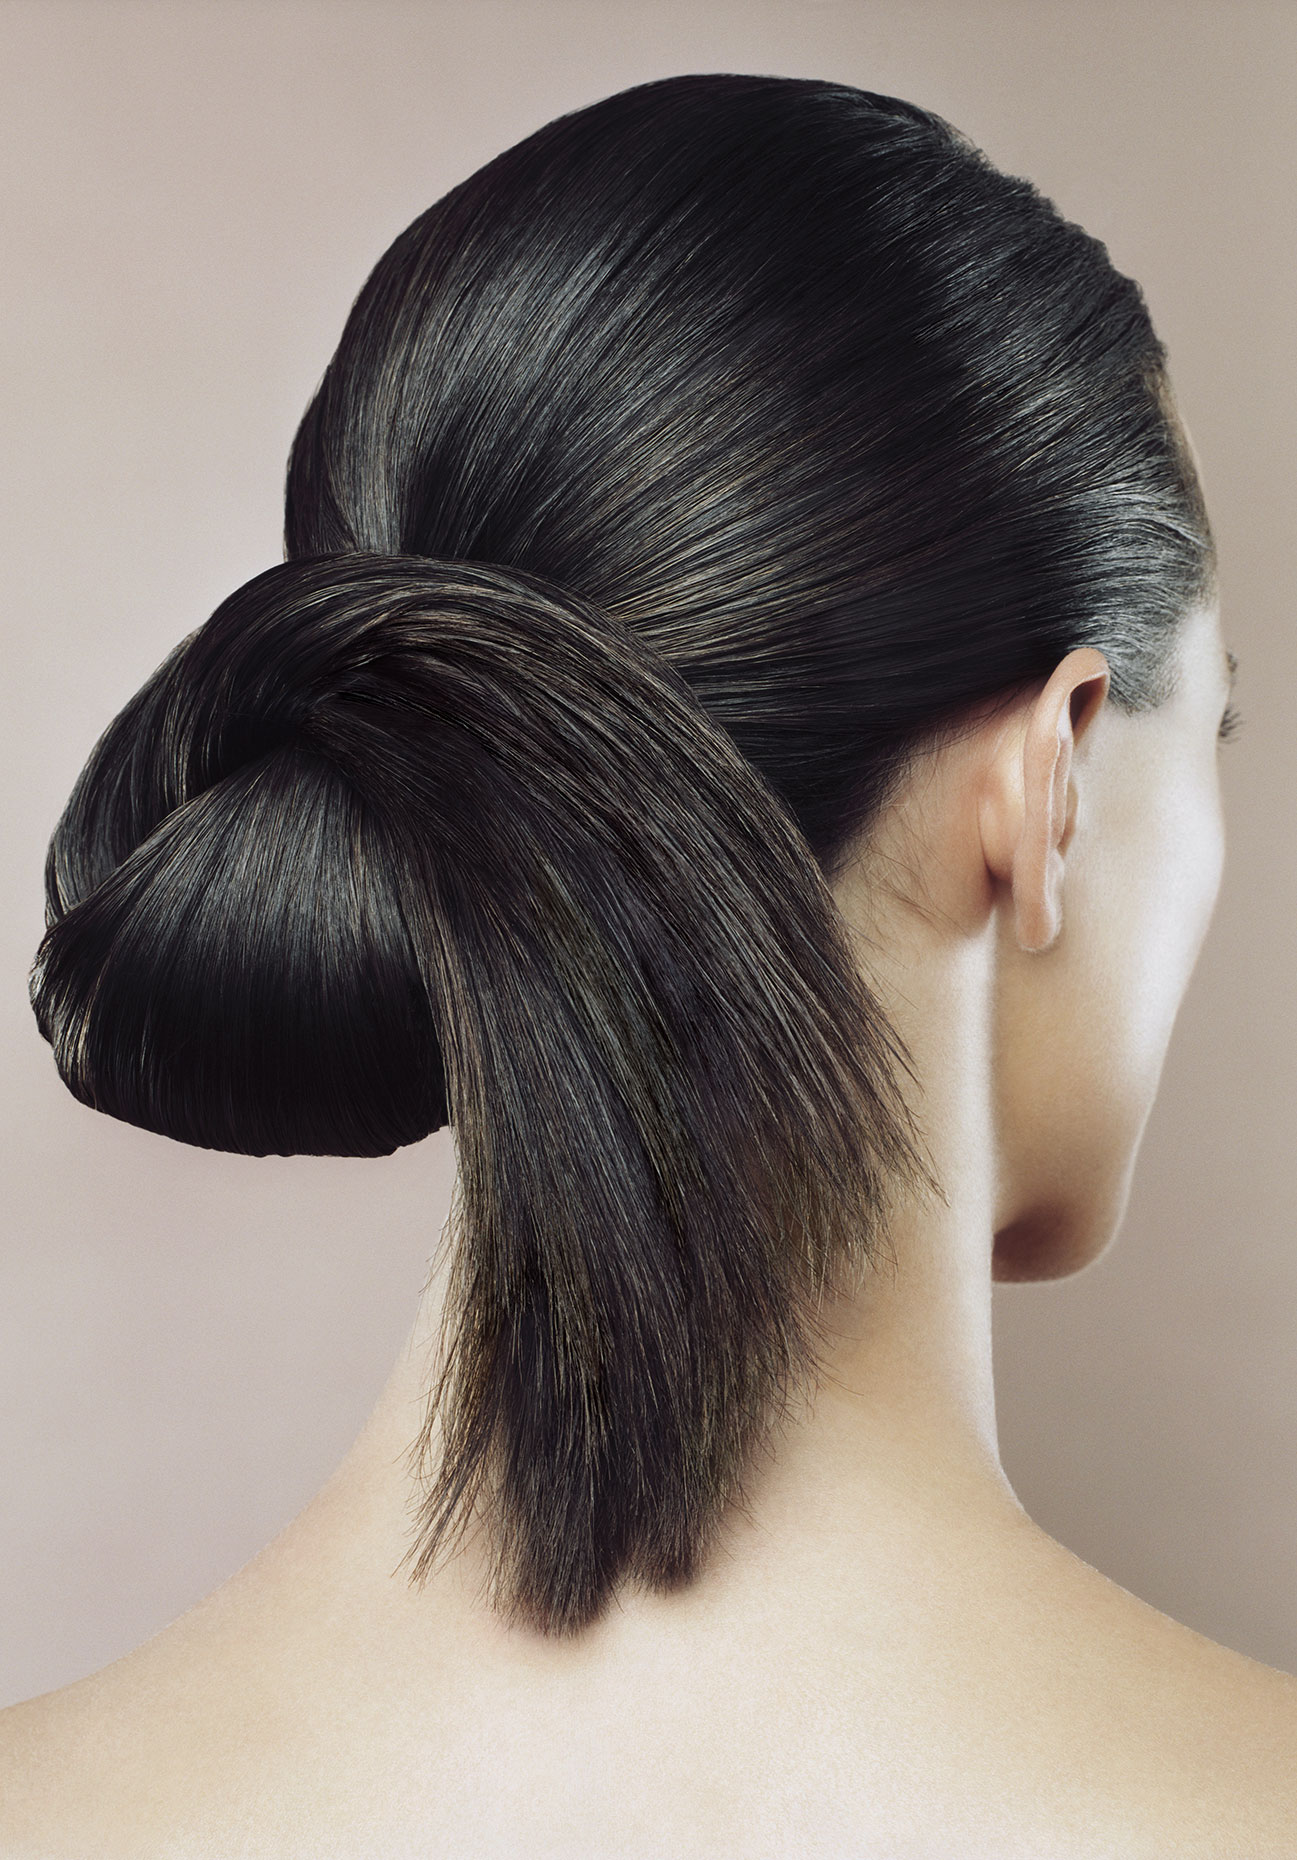 Woman with hair styled, rear view.